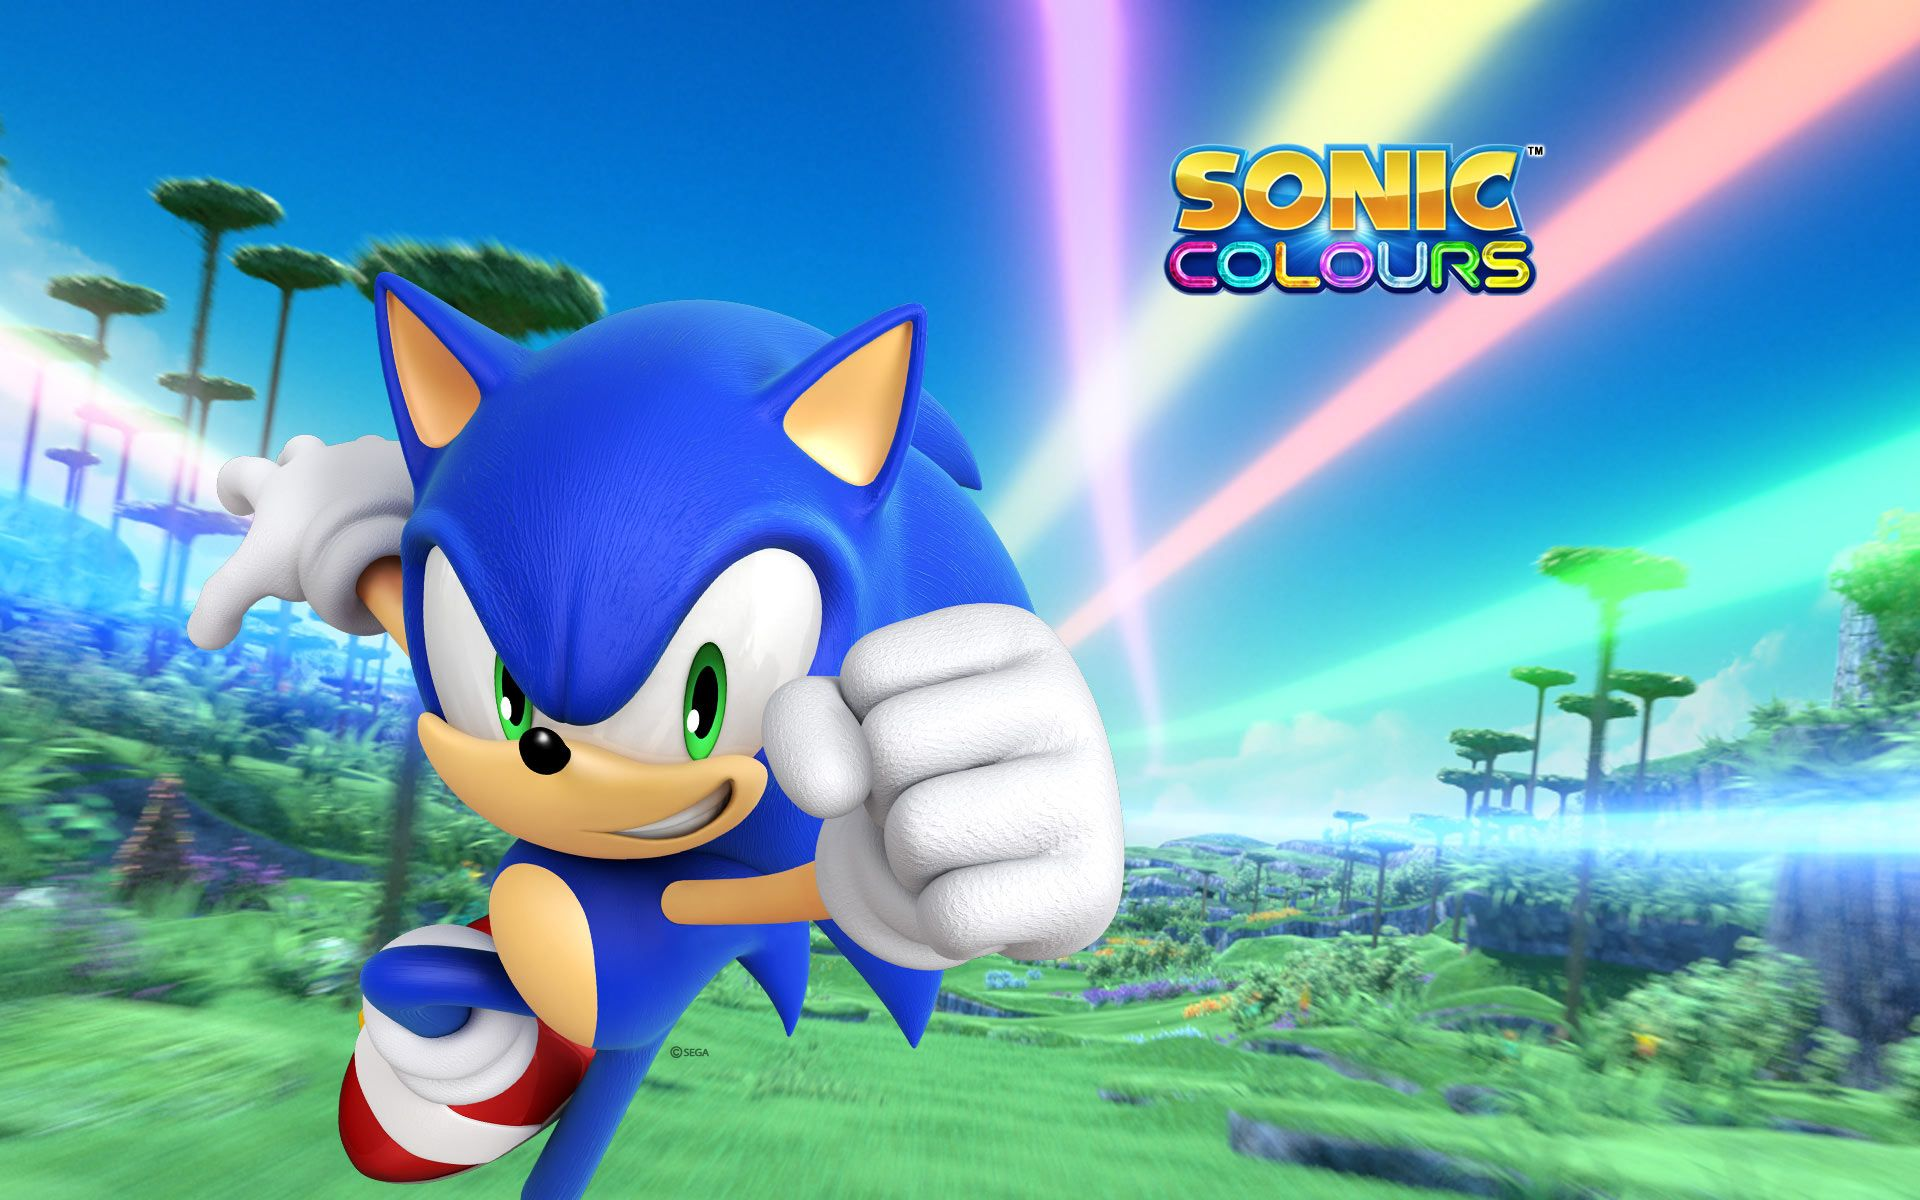 Download Exclusive Sonic Colours Wallpaper Sonic Sonic Songs Colorful Wallpaper